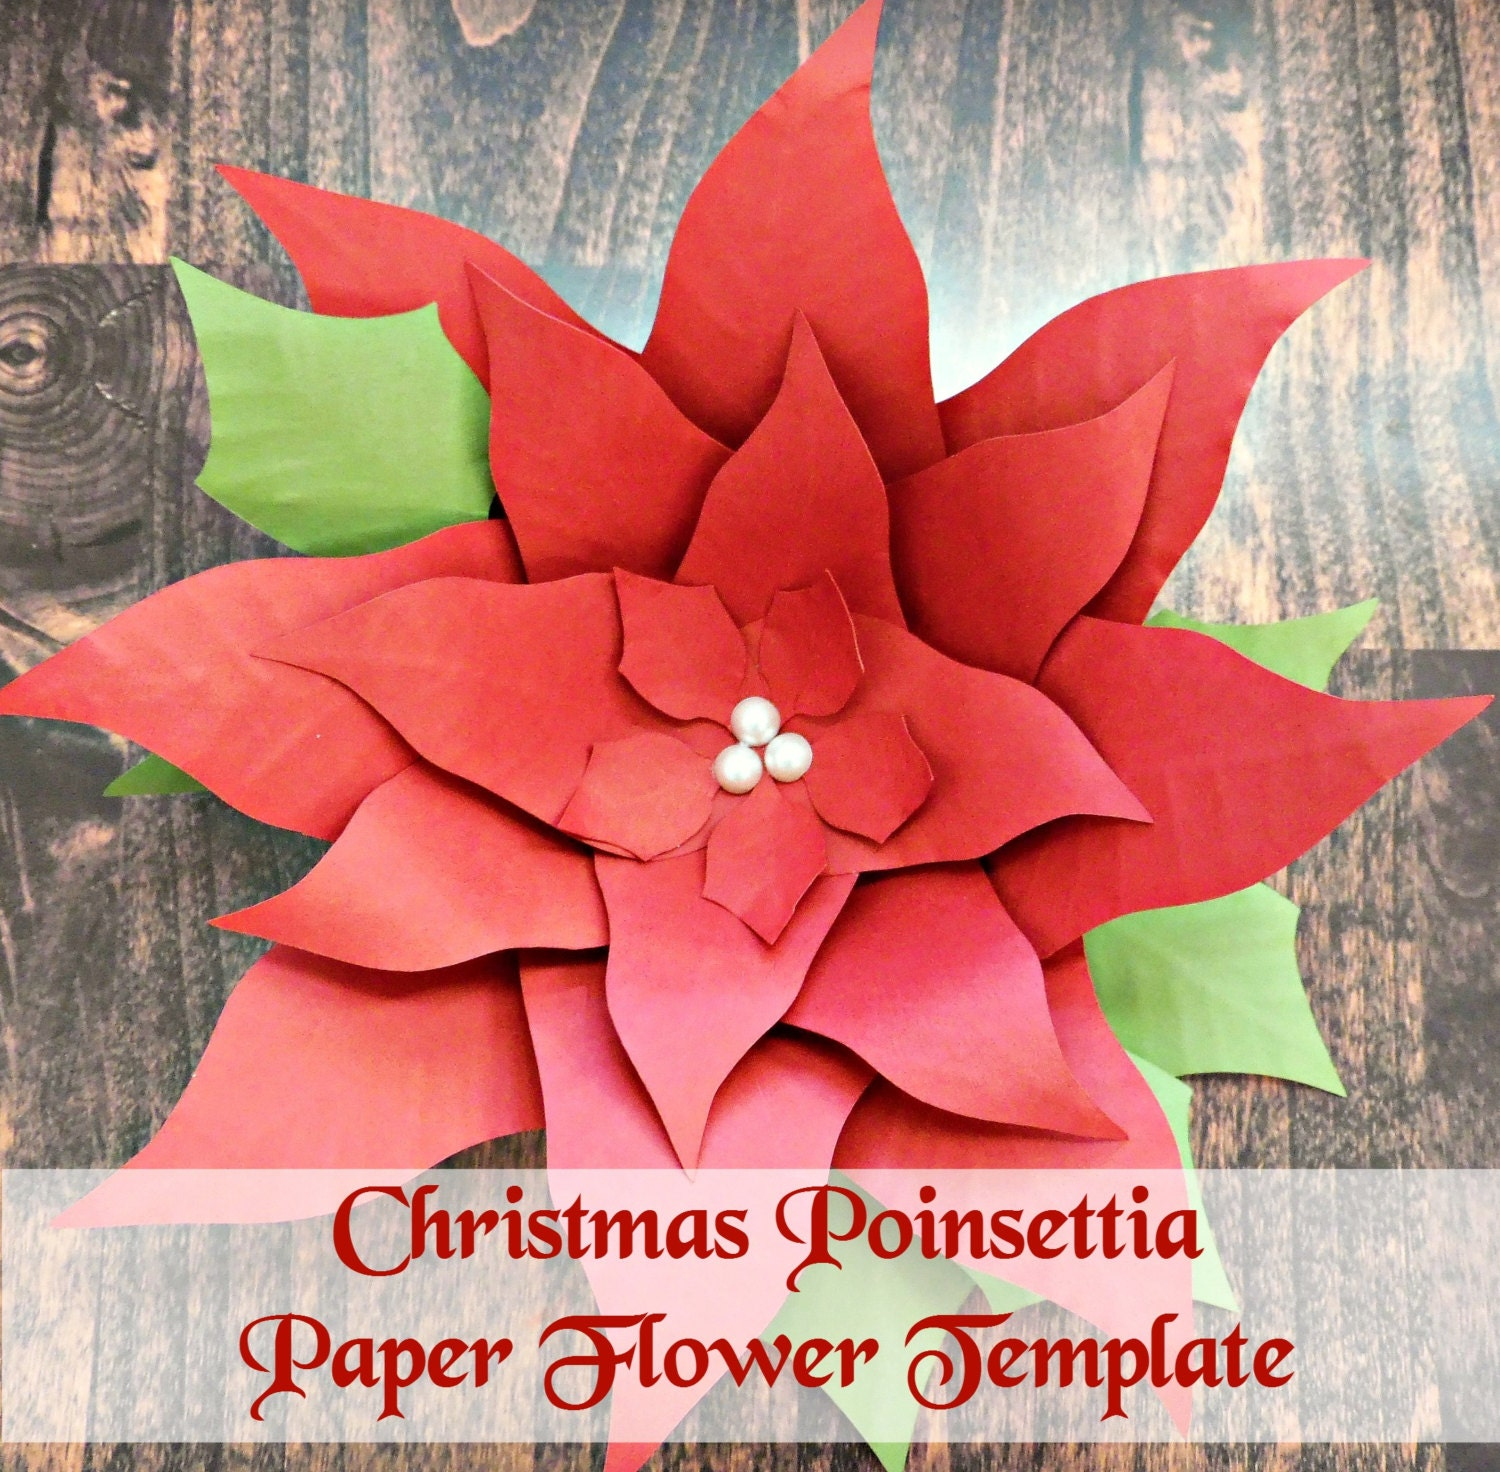 Christmas Giant Poinsettia Paper Flowers DIY Christmas